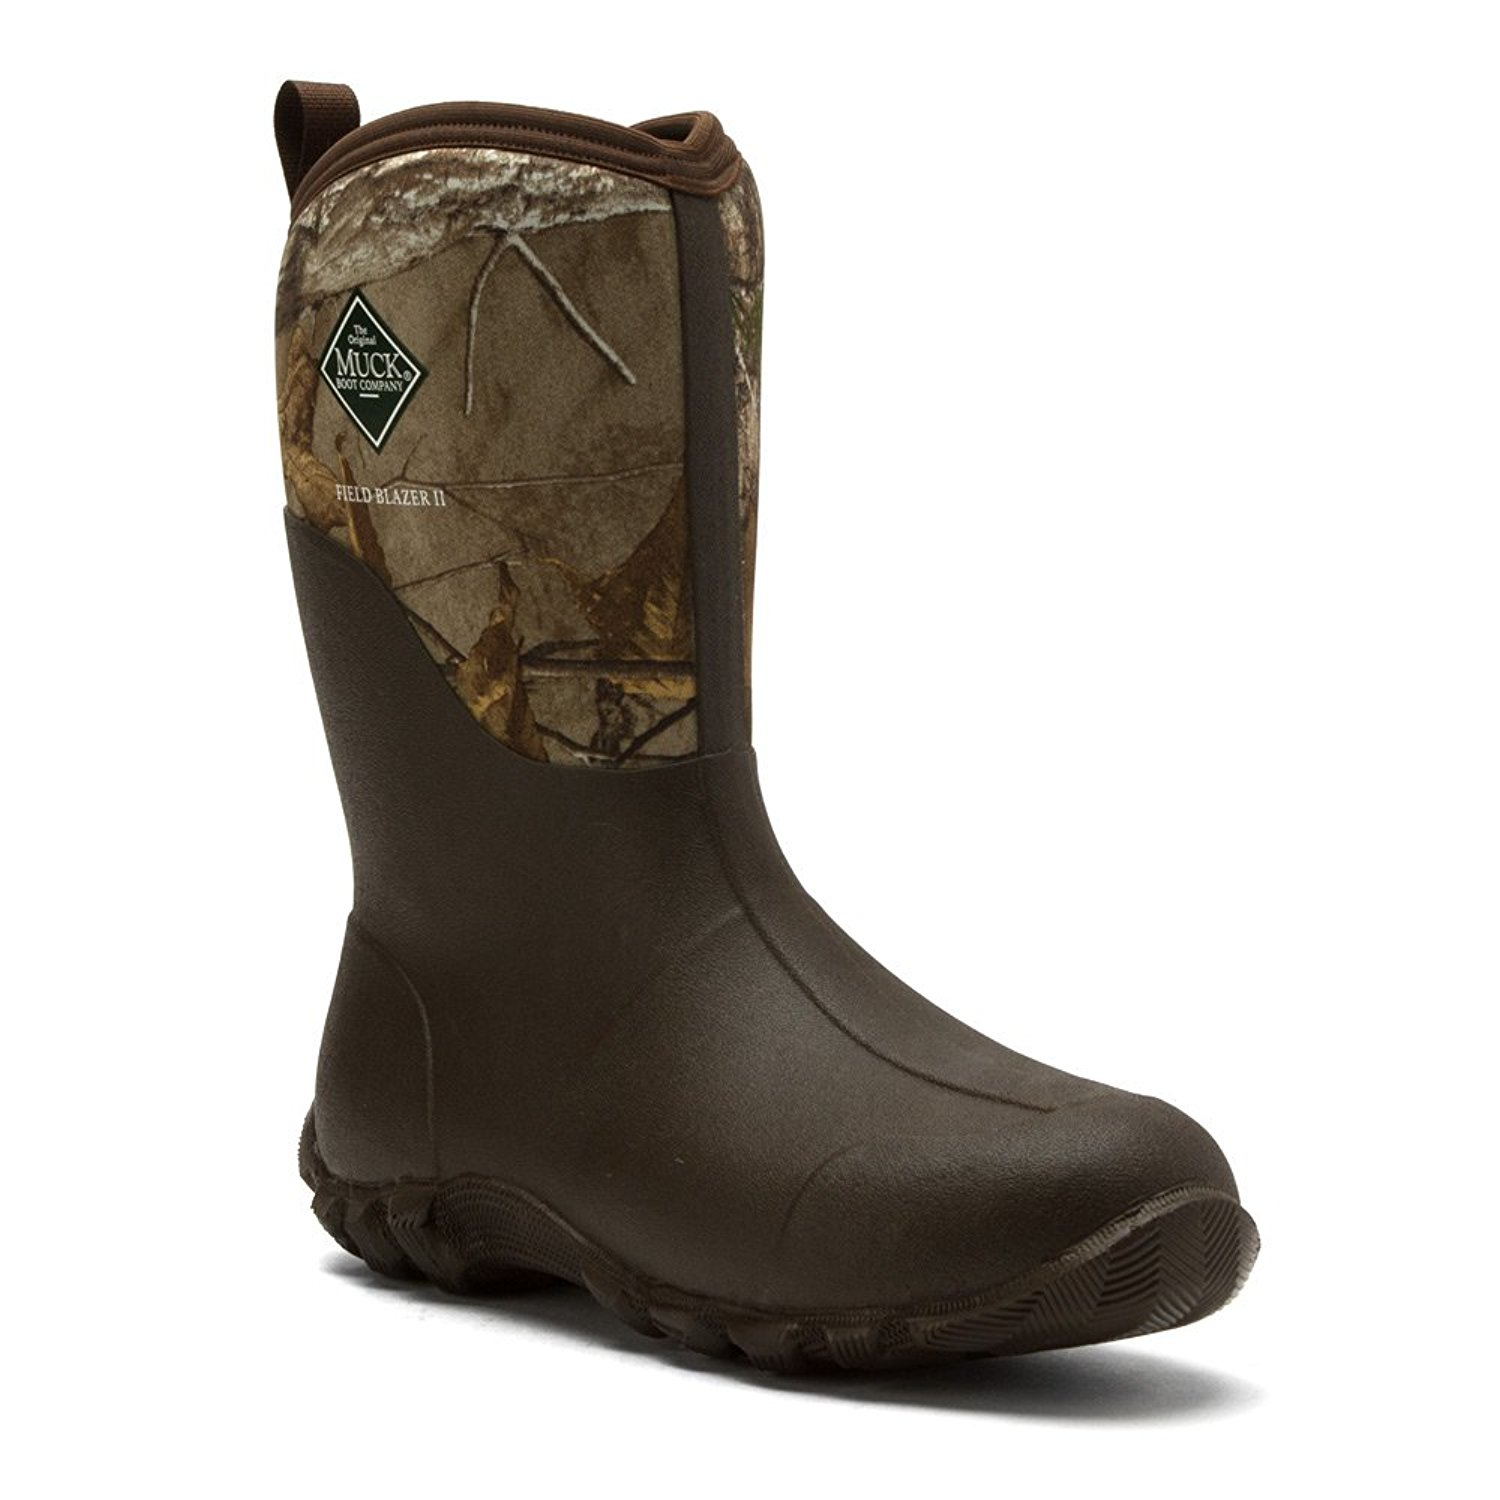 c674a2efbf5 Cheap Camo Muck Boots, find Camo Muck Boots deals on line at Alibaba.com